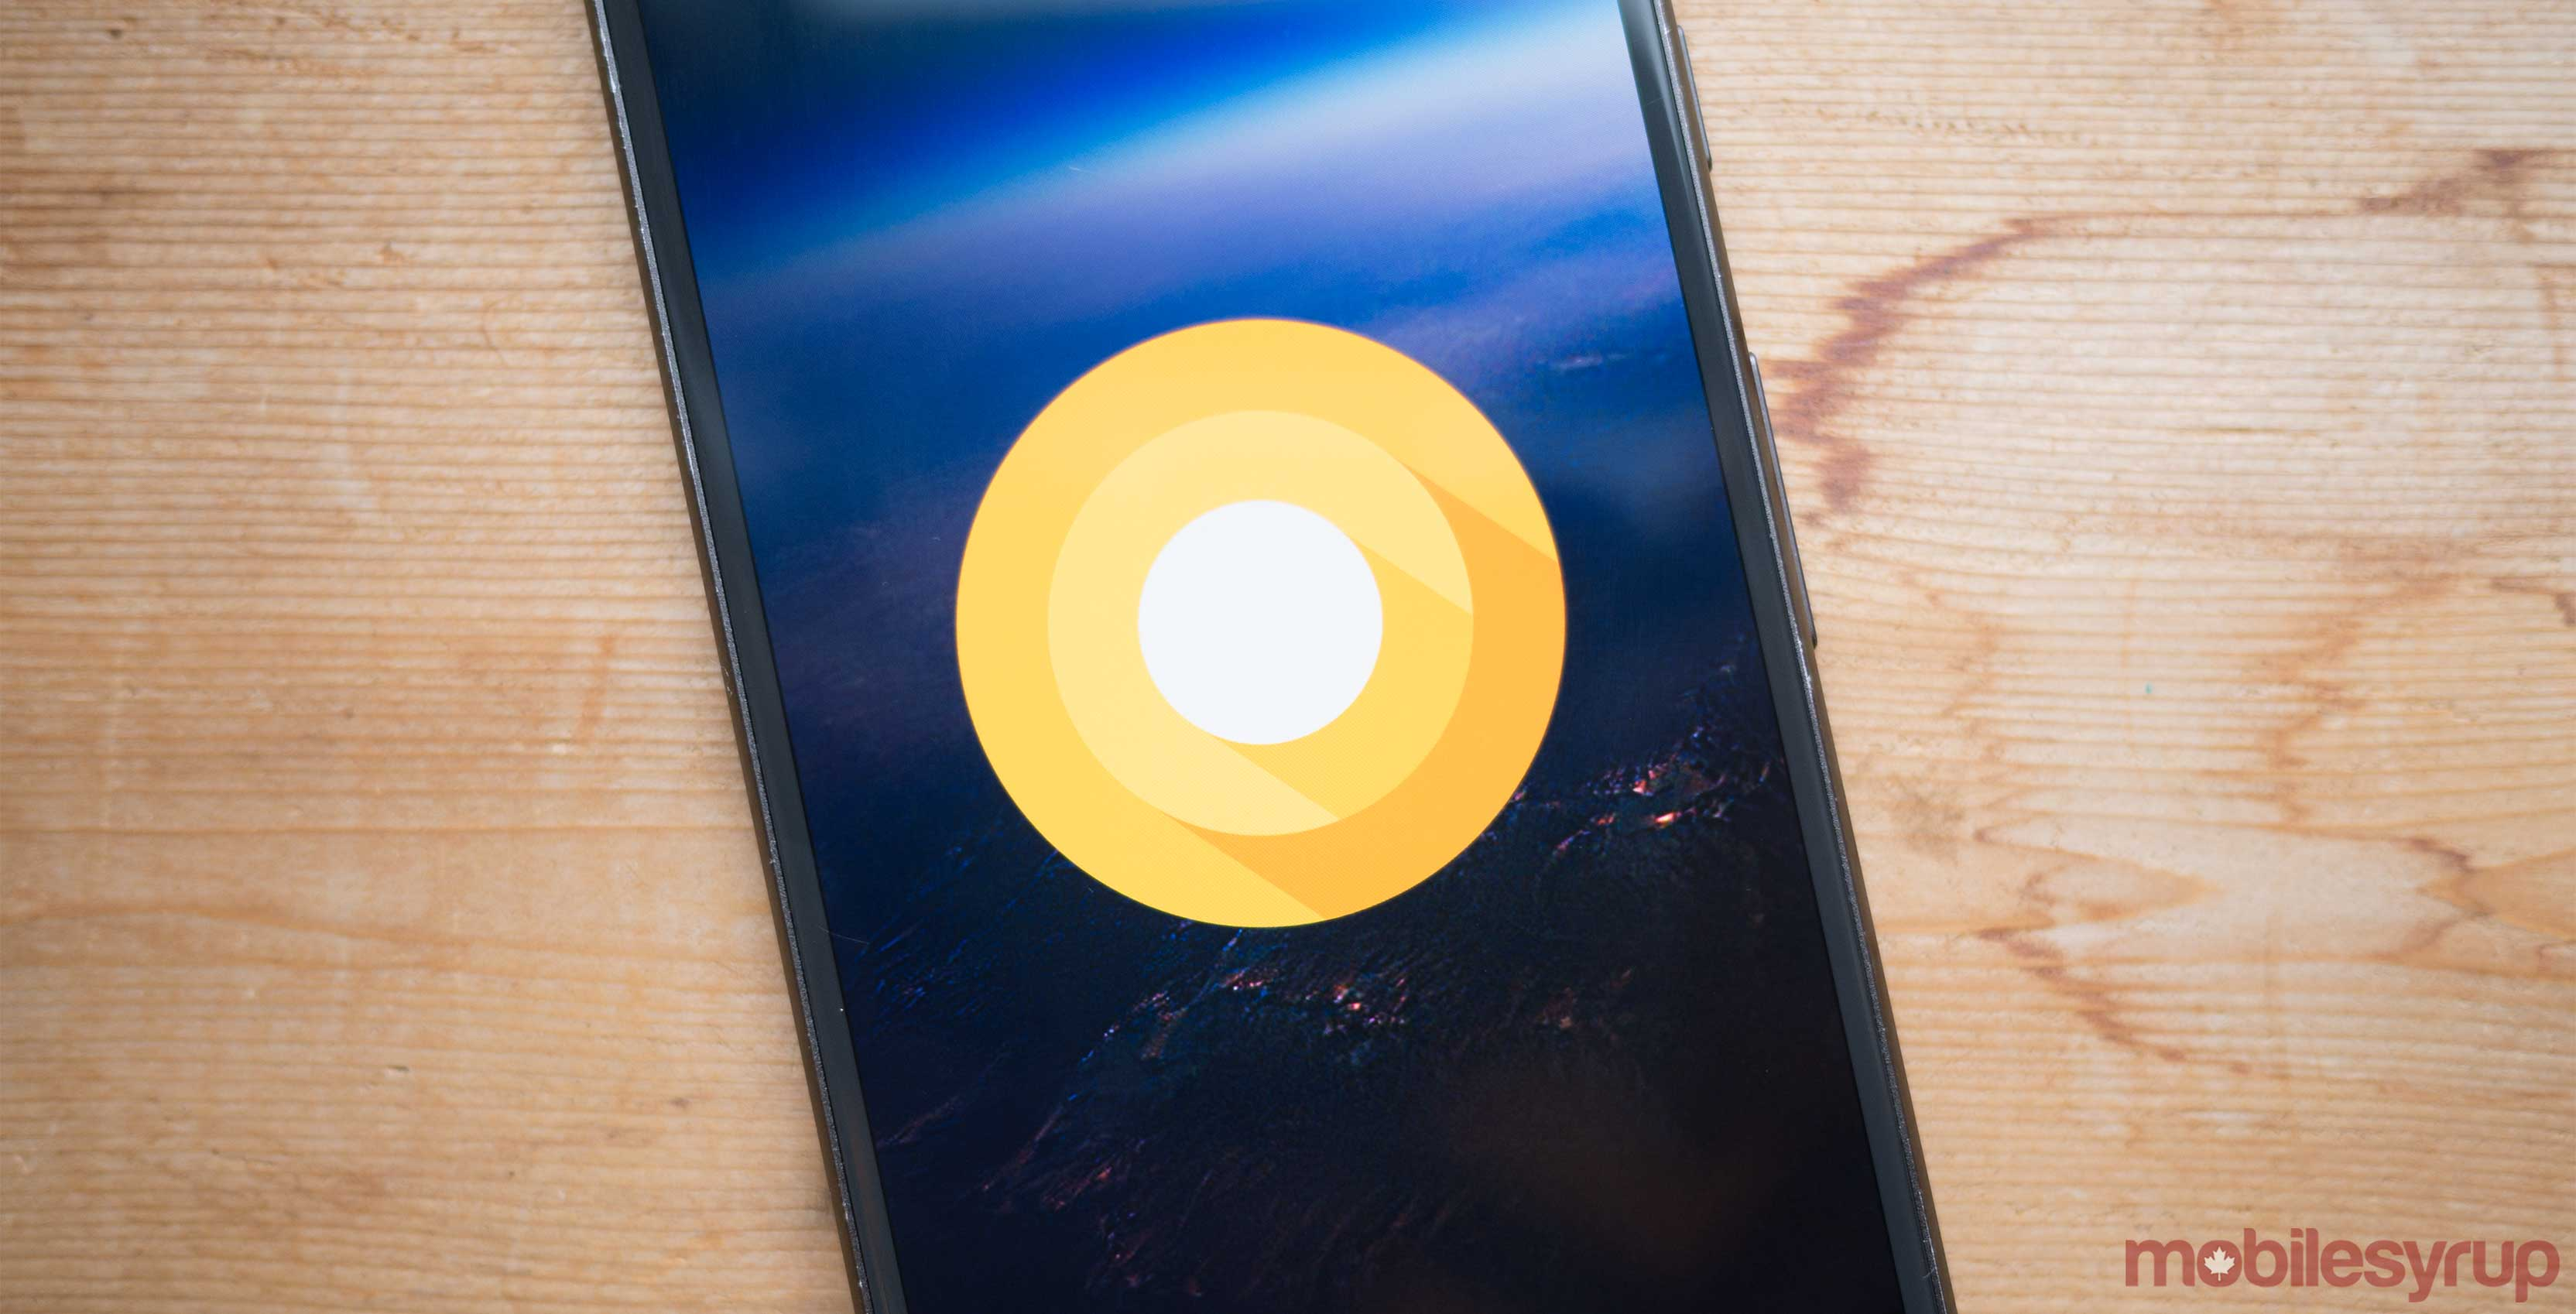 Android O device